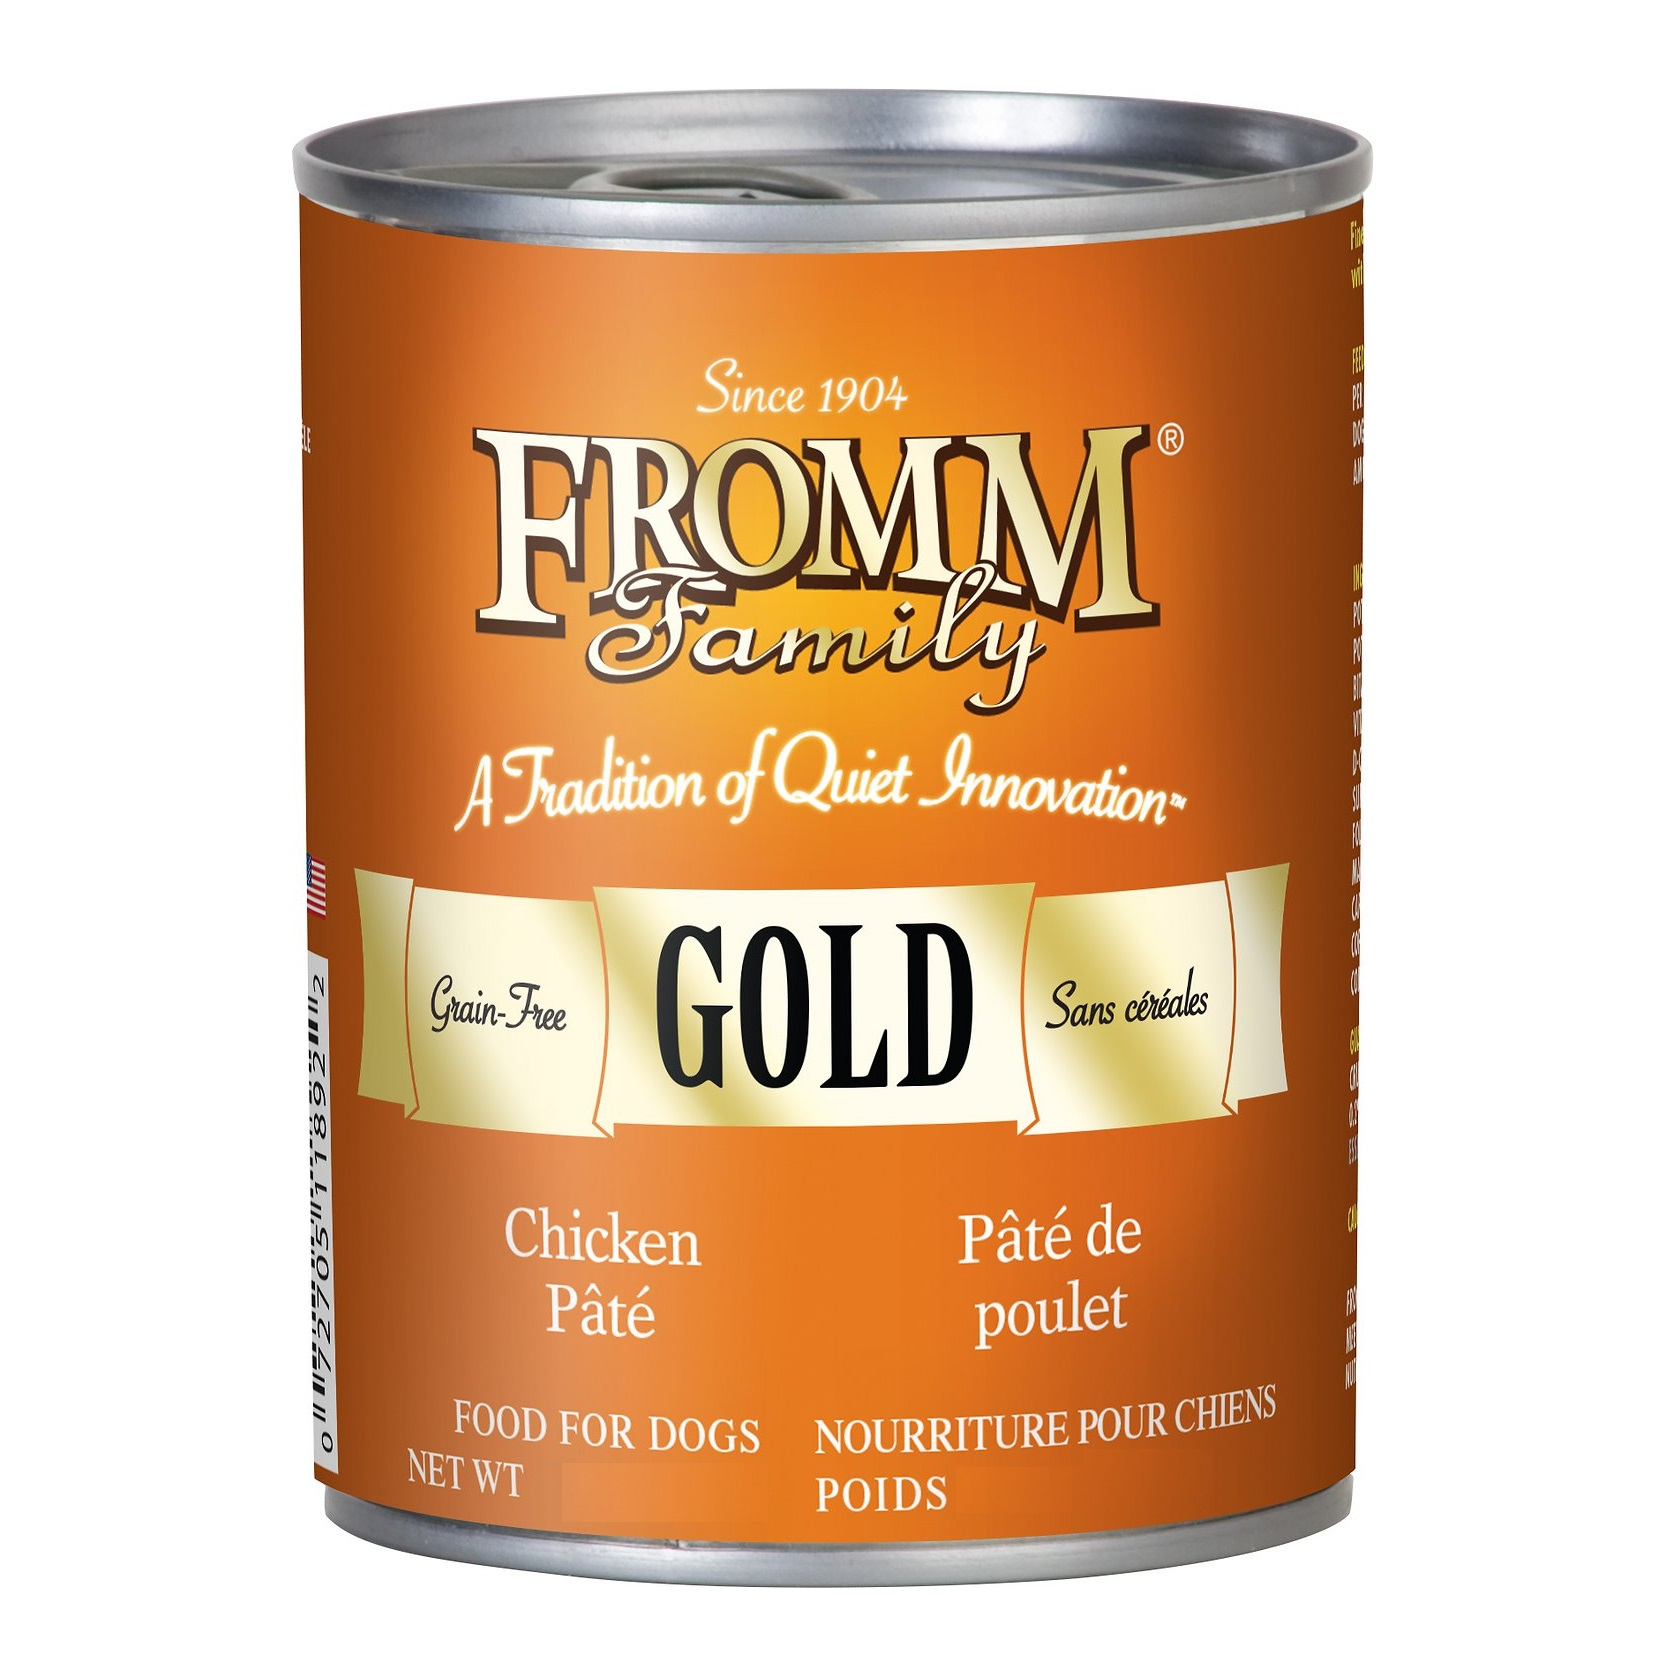 Fromm Gold Grain-Free Chicken Pate Canned Dog Food 12.2z, 12